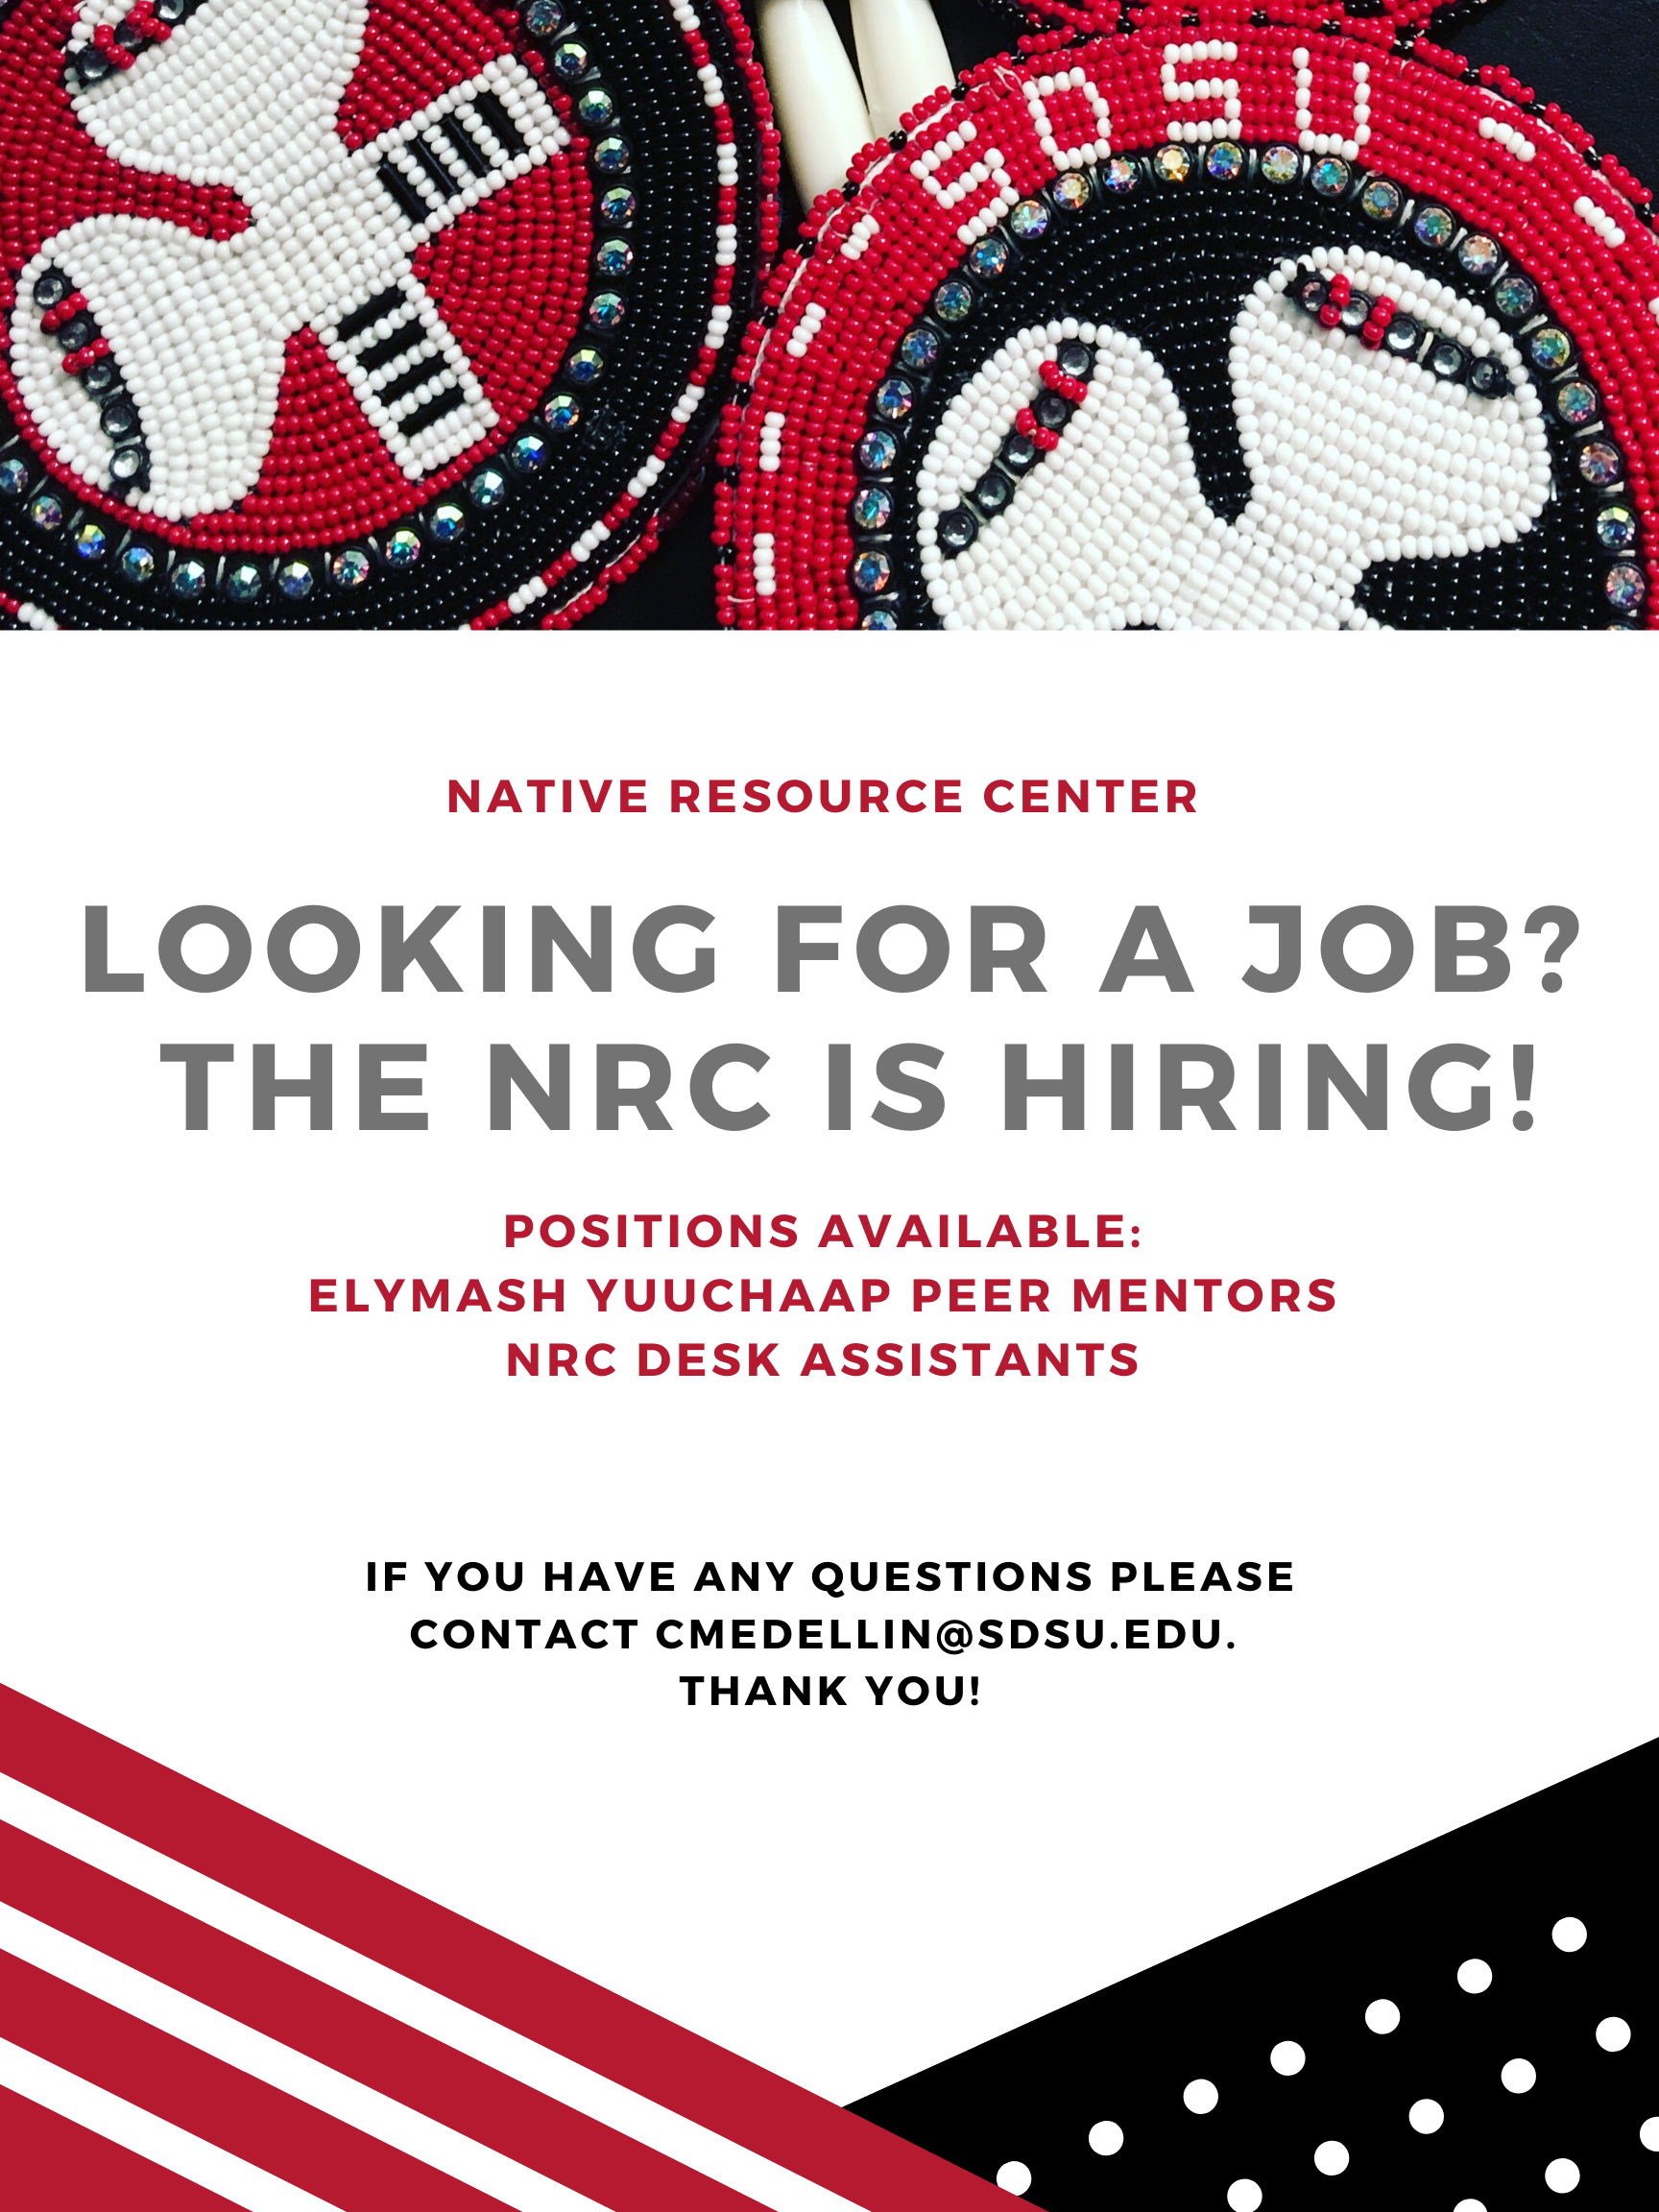 SDSU Native Resource Center hiring Peer Mentors and Desk Assistants